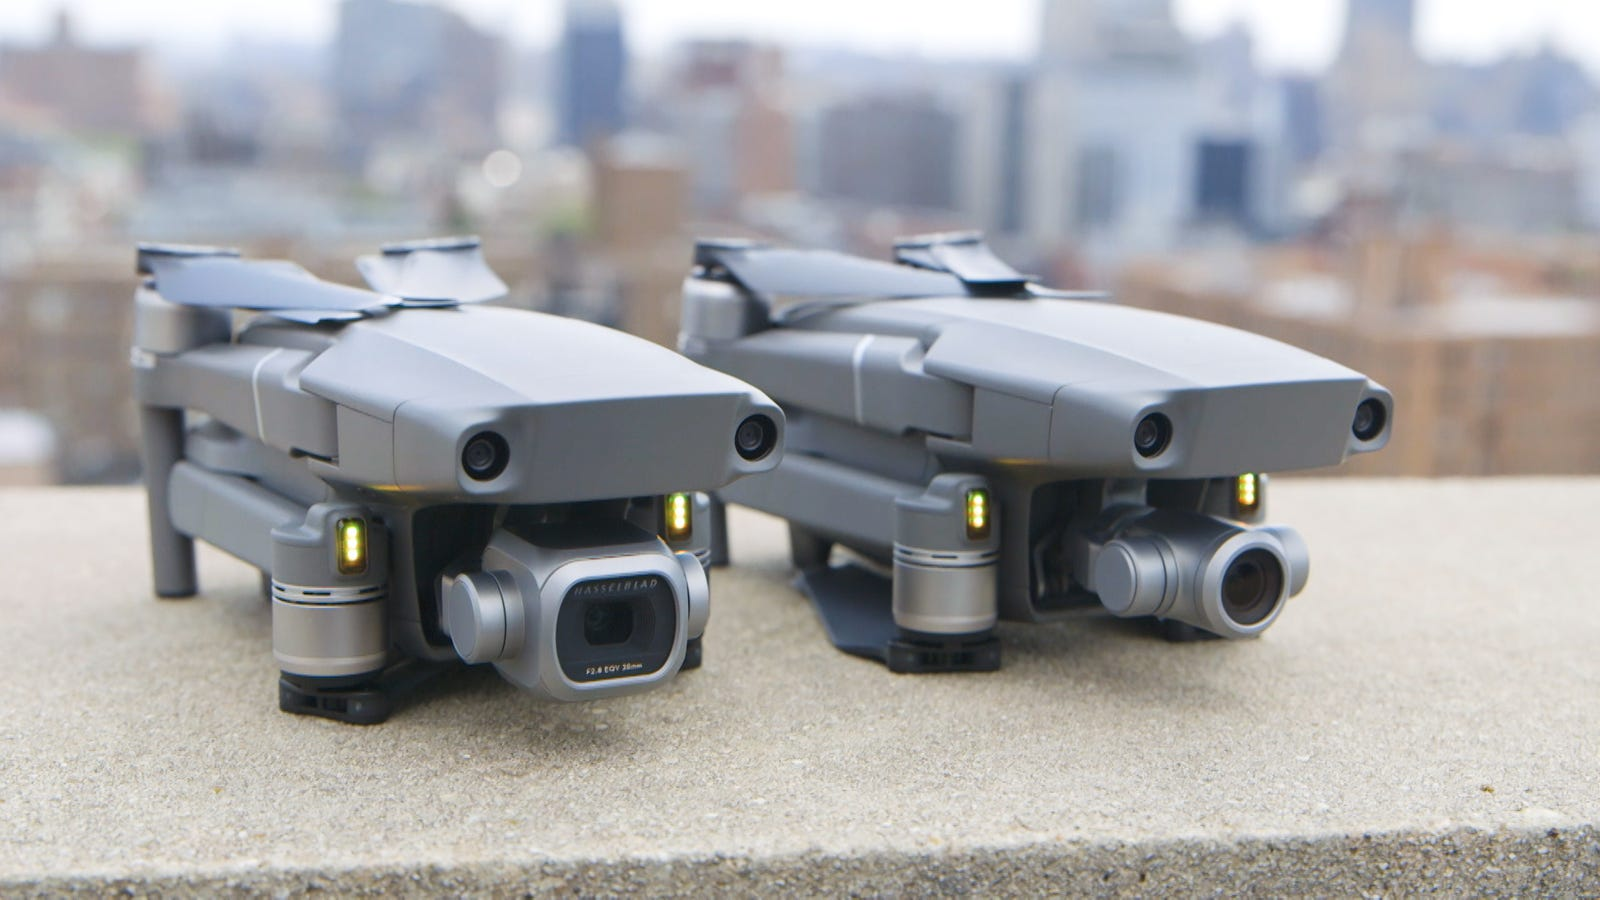 Illustration for article titled DJIs Mavic 2 Series Drones Come With More Powerful Cameras and So Many Sensors